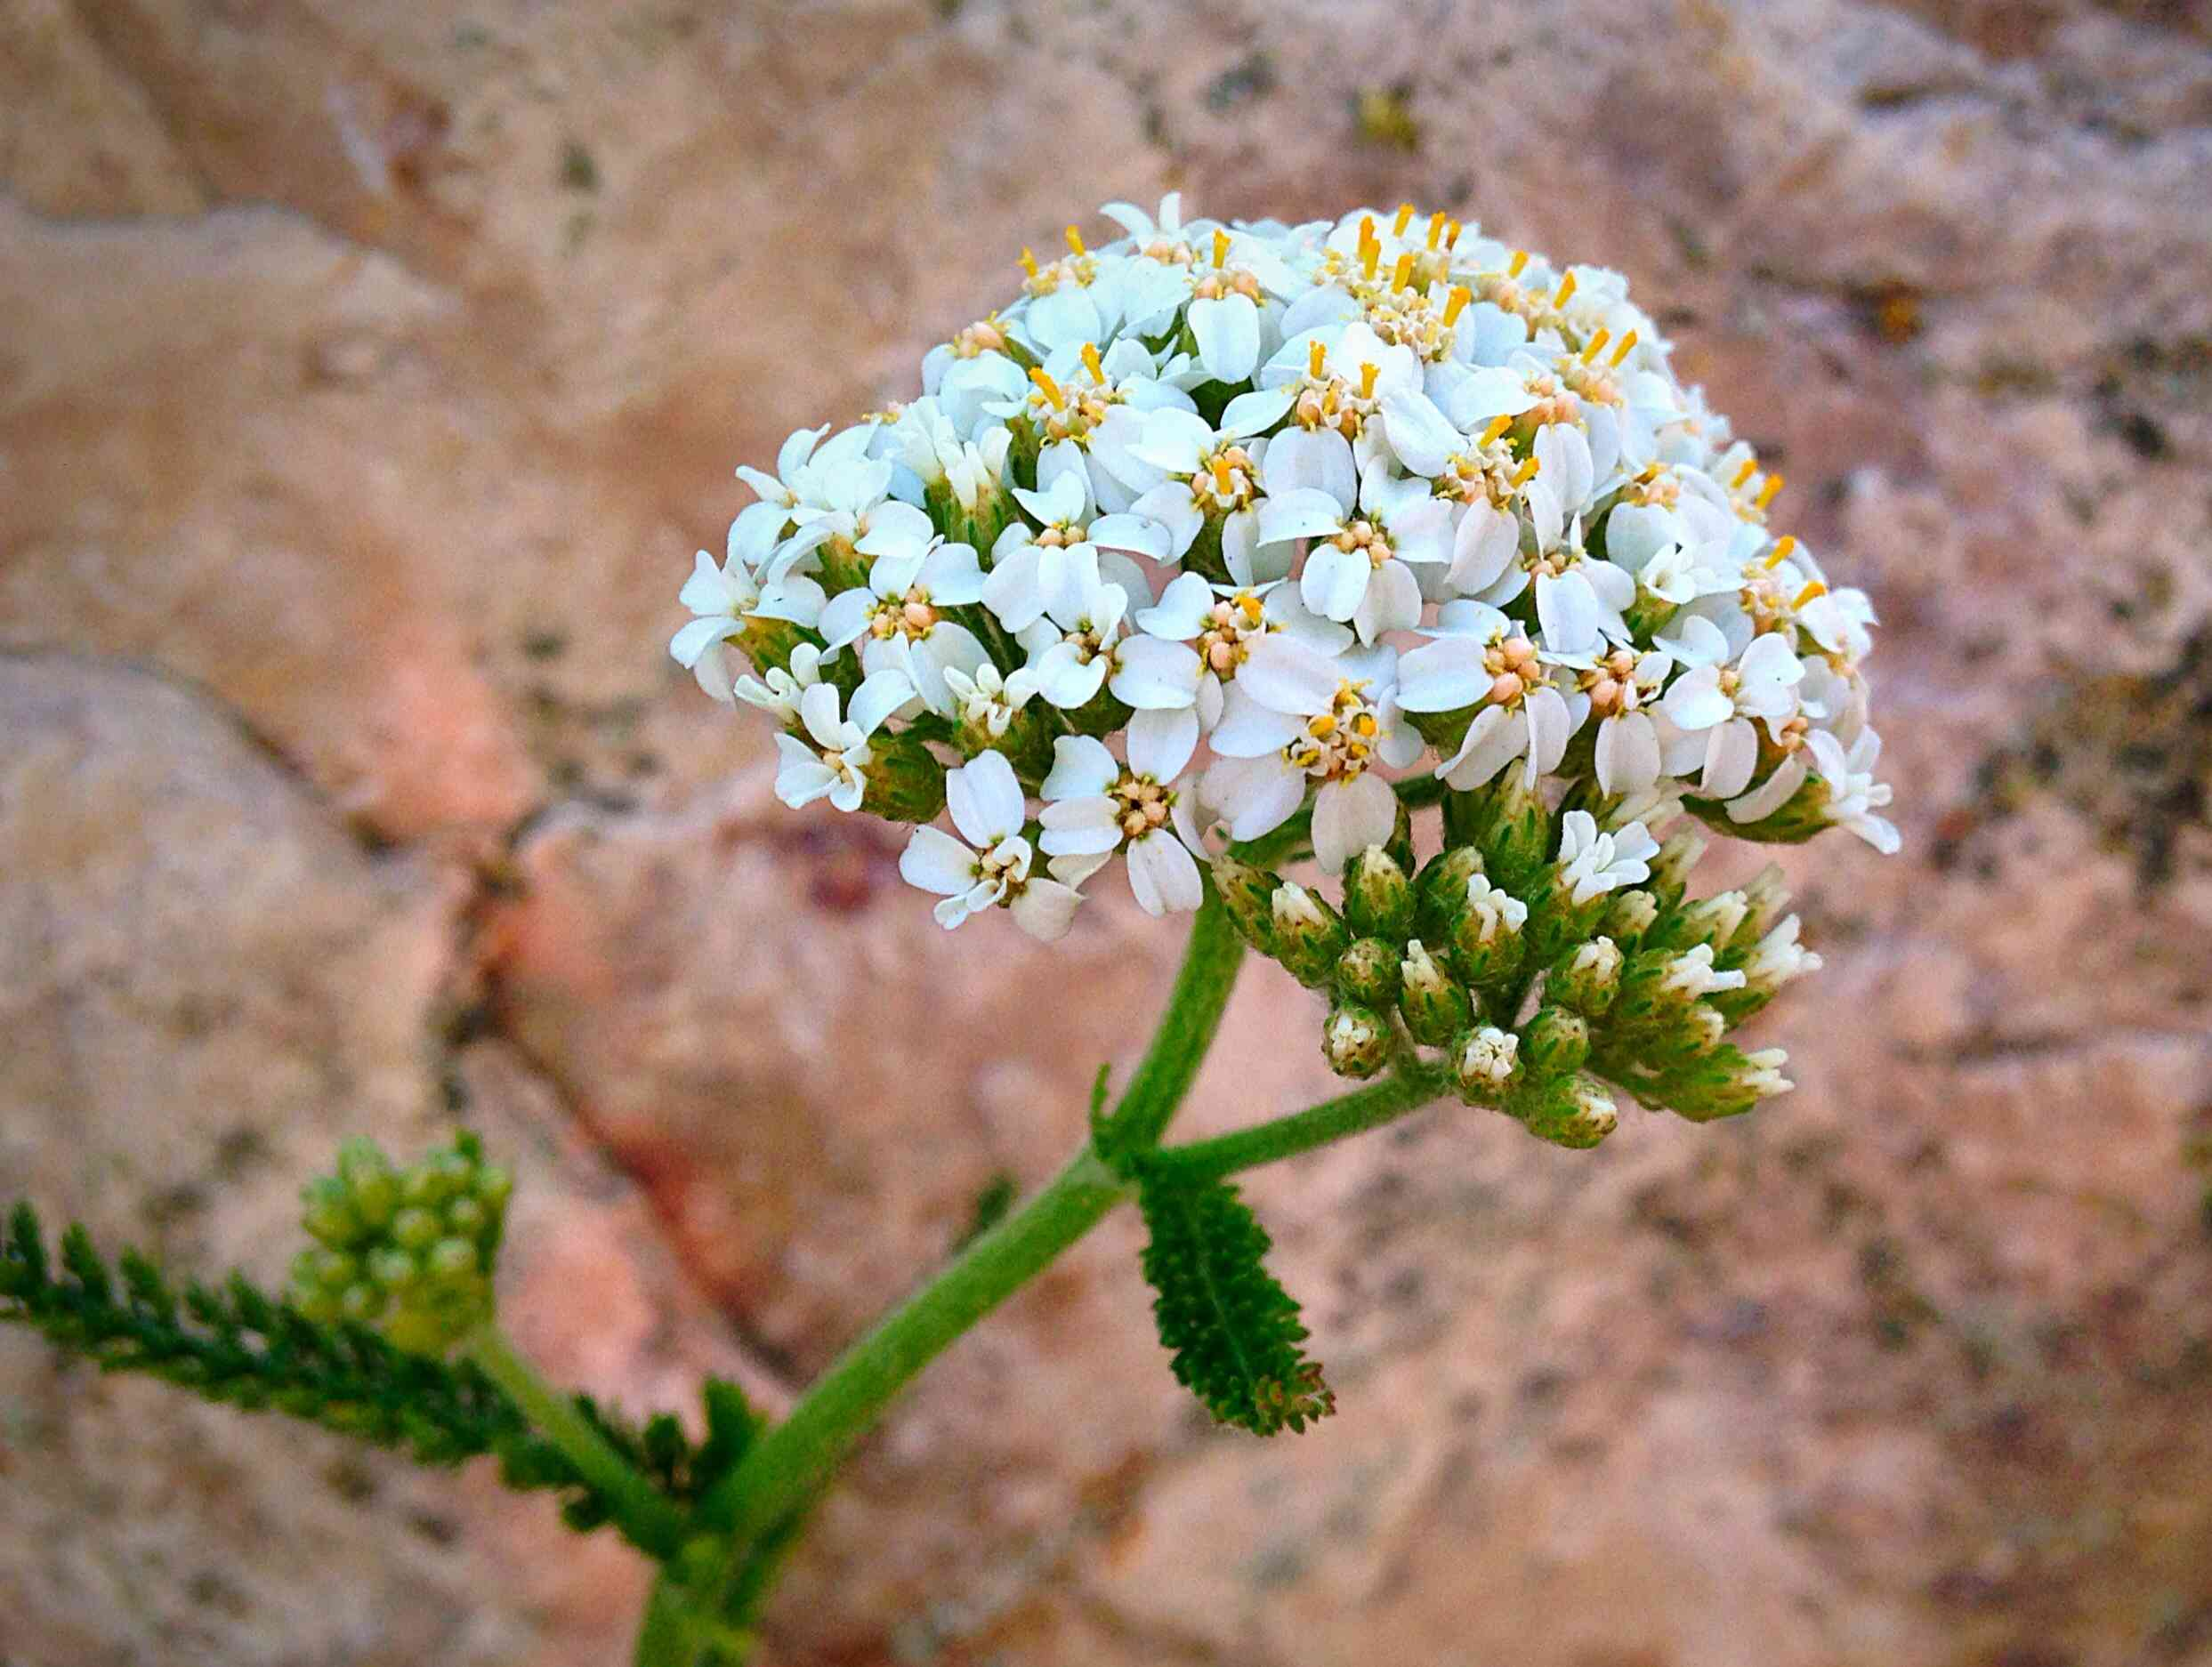 candytuft growing against rocks